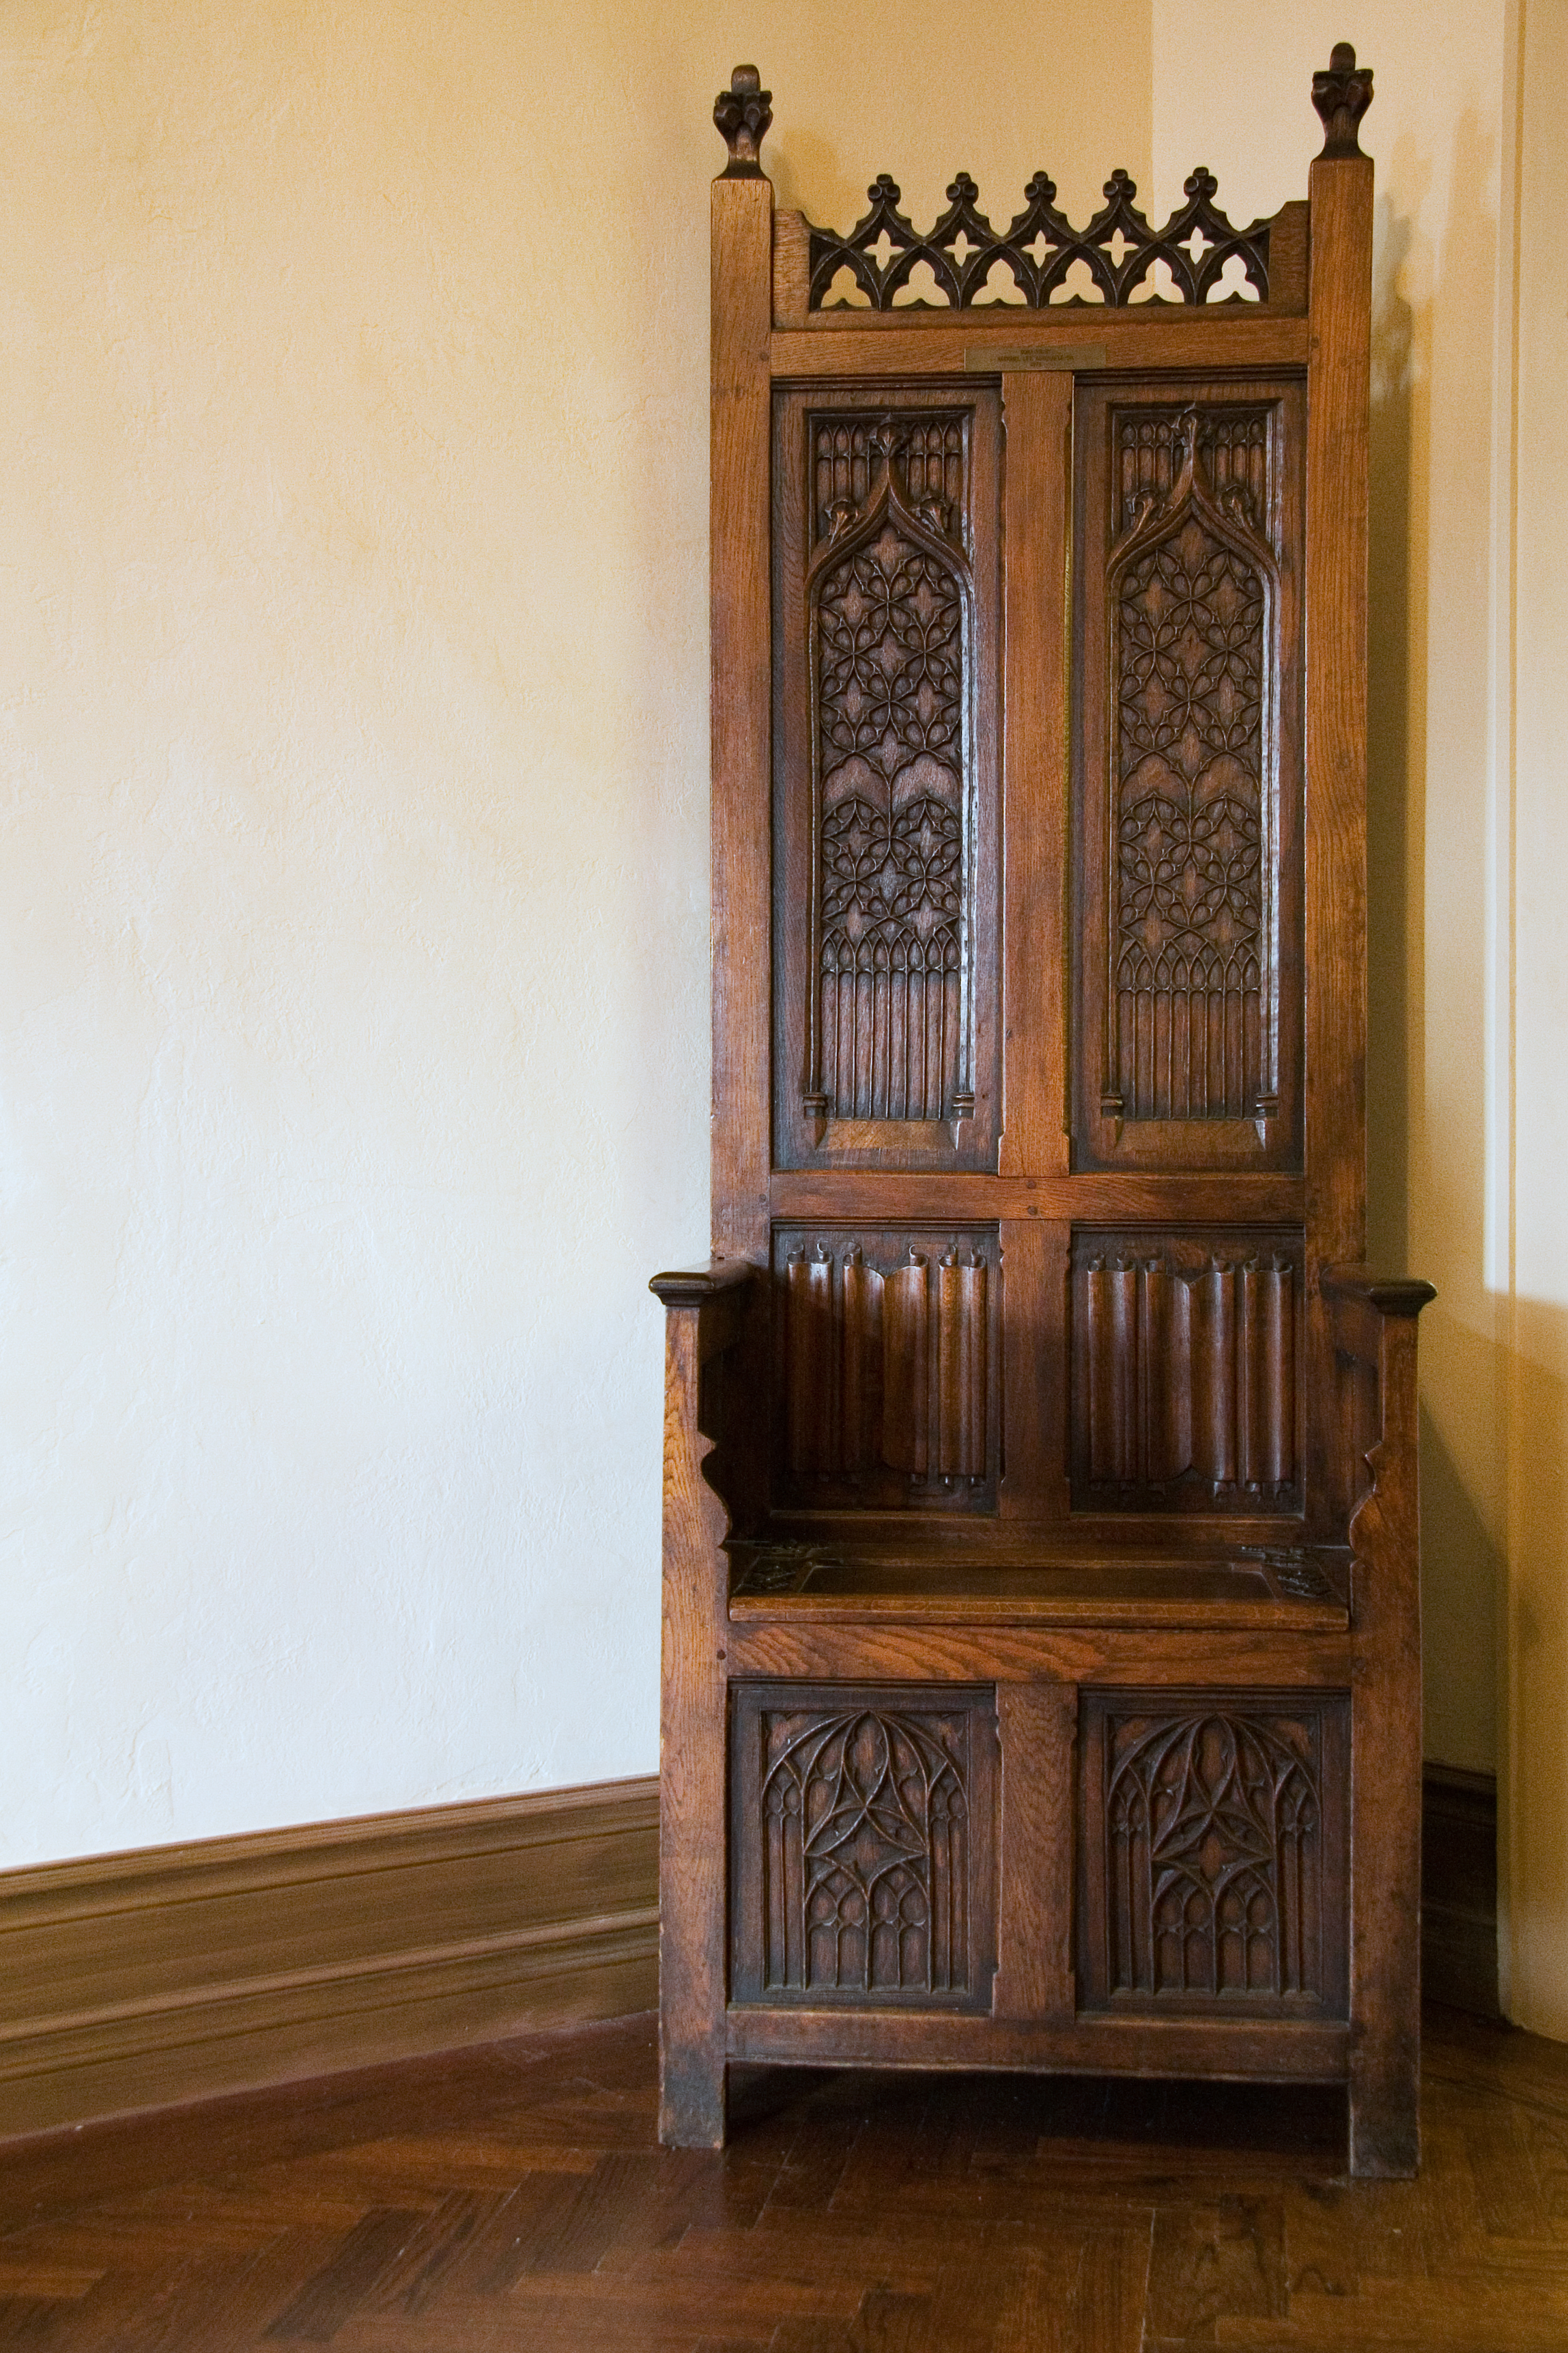 File:Artisan Carved Wood Chair, Casa Loma, Toronto, Canada